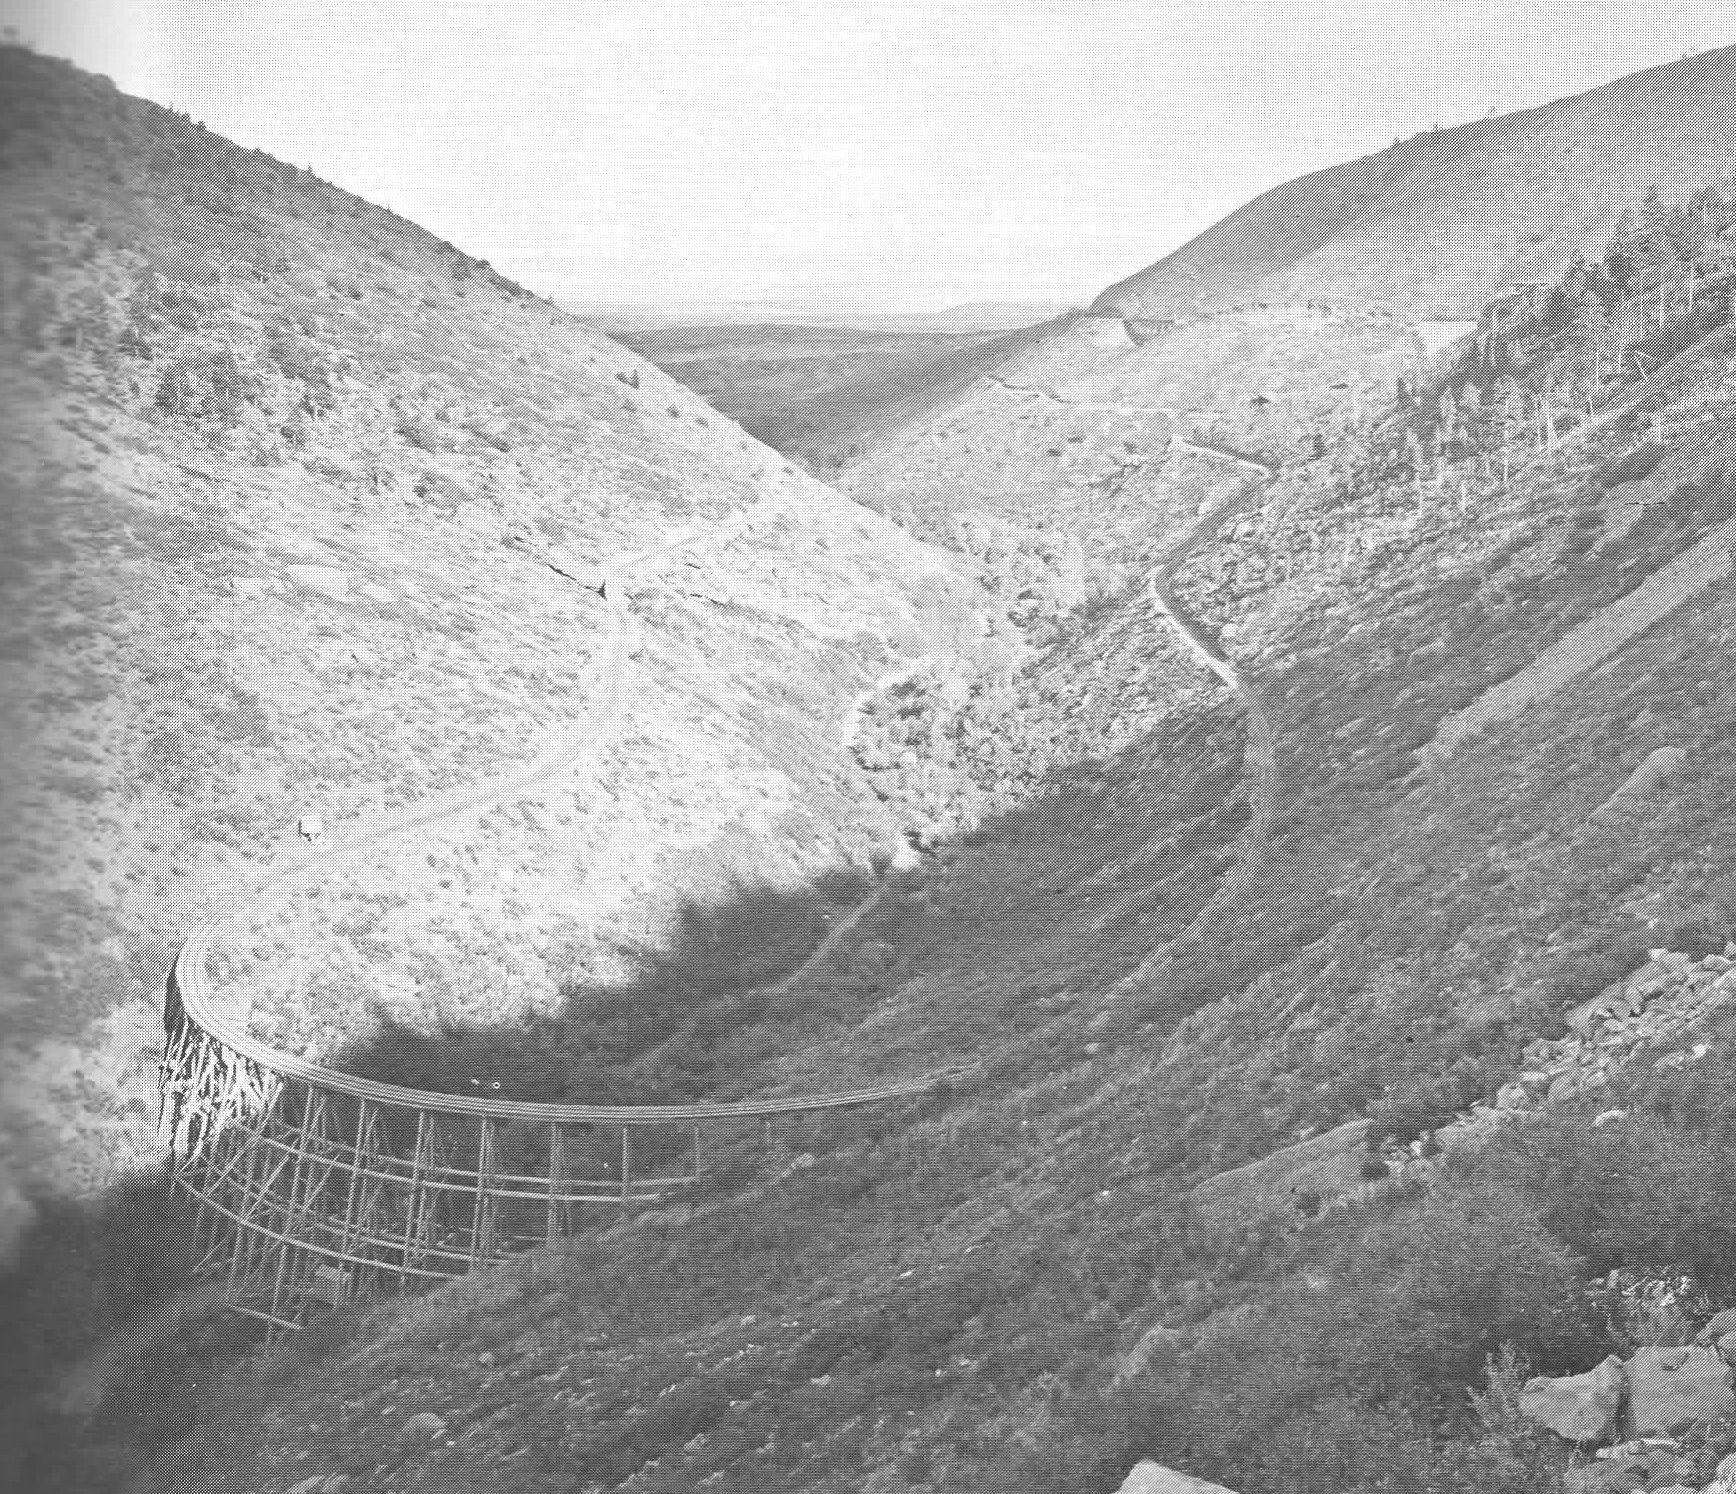 Bald Mt Ry 95' high Middle Ck. trestle.jpg